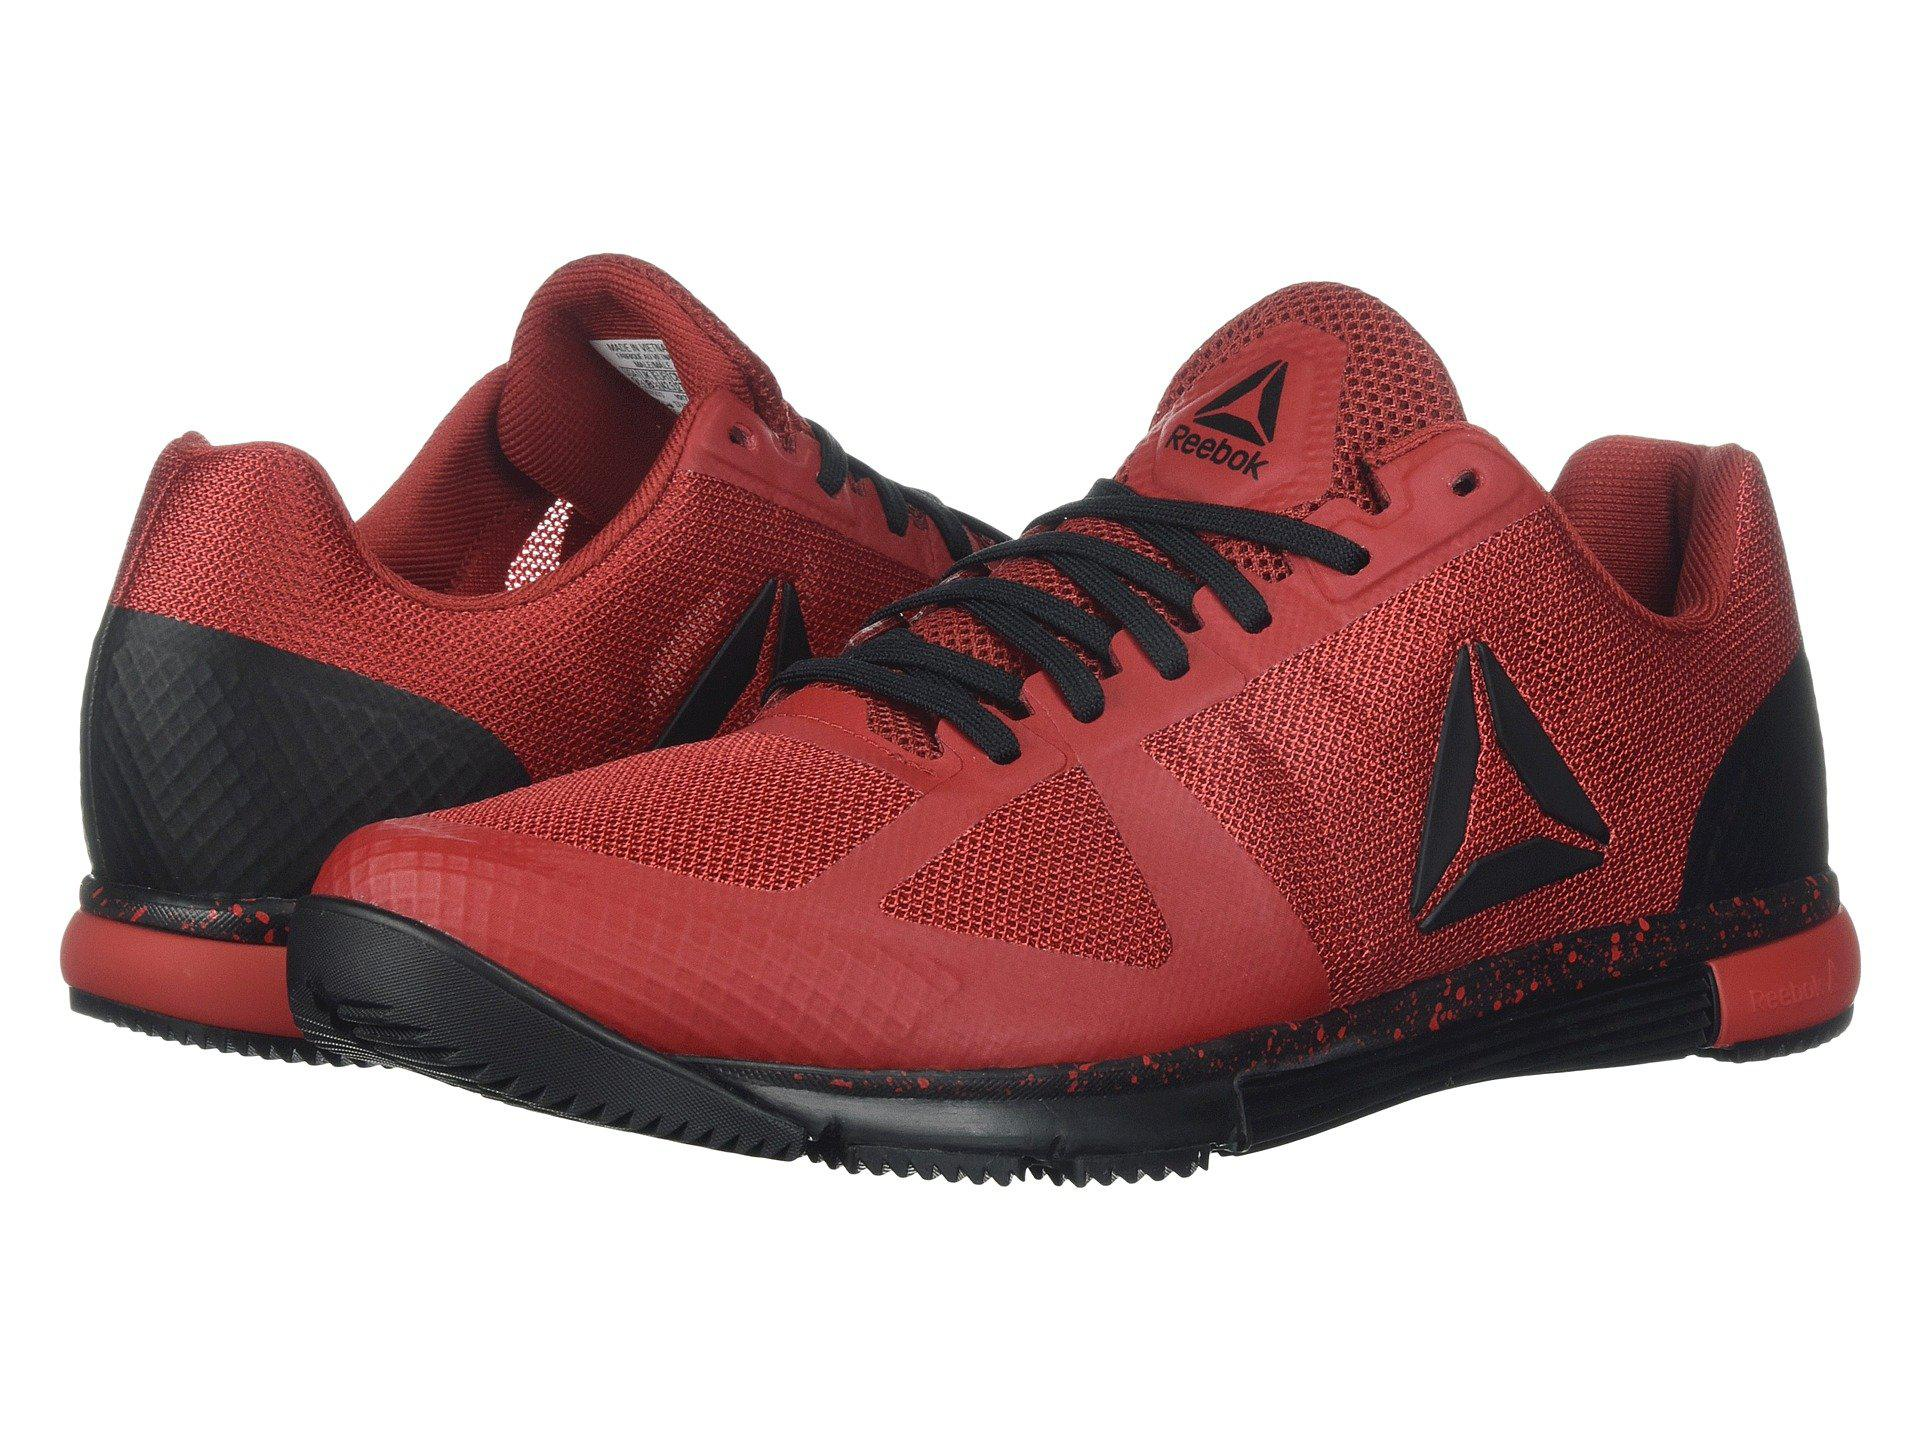 857d4d8d71ed Reebok - Red Crossfit® Speed Tr 2.0 for Men - Lyst. View fullscreen